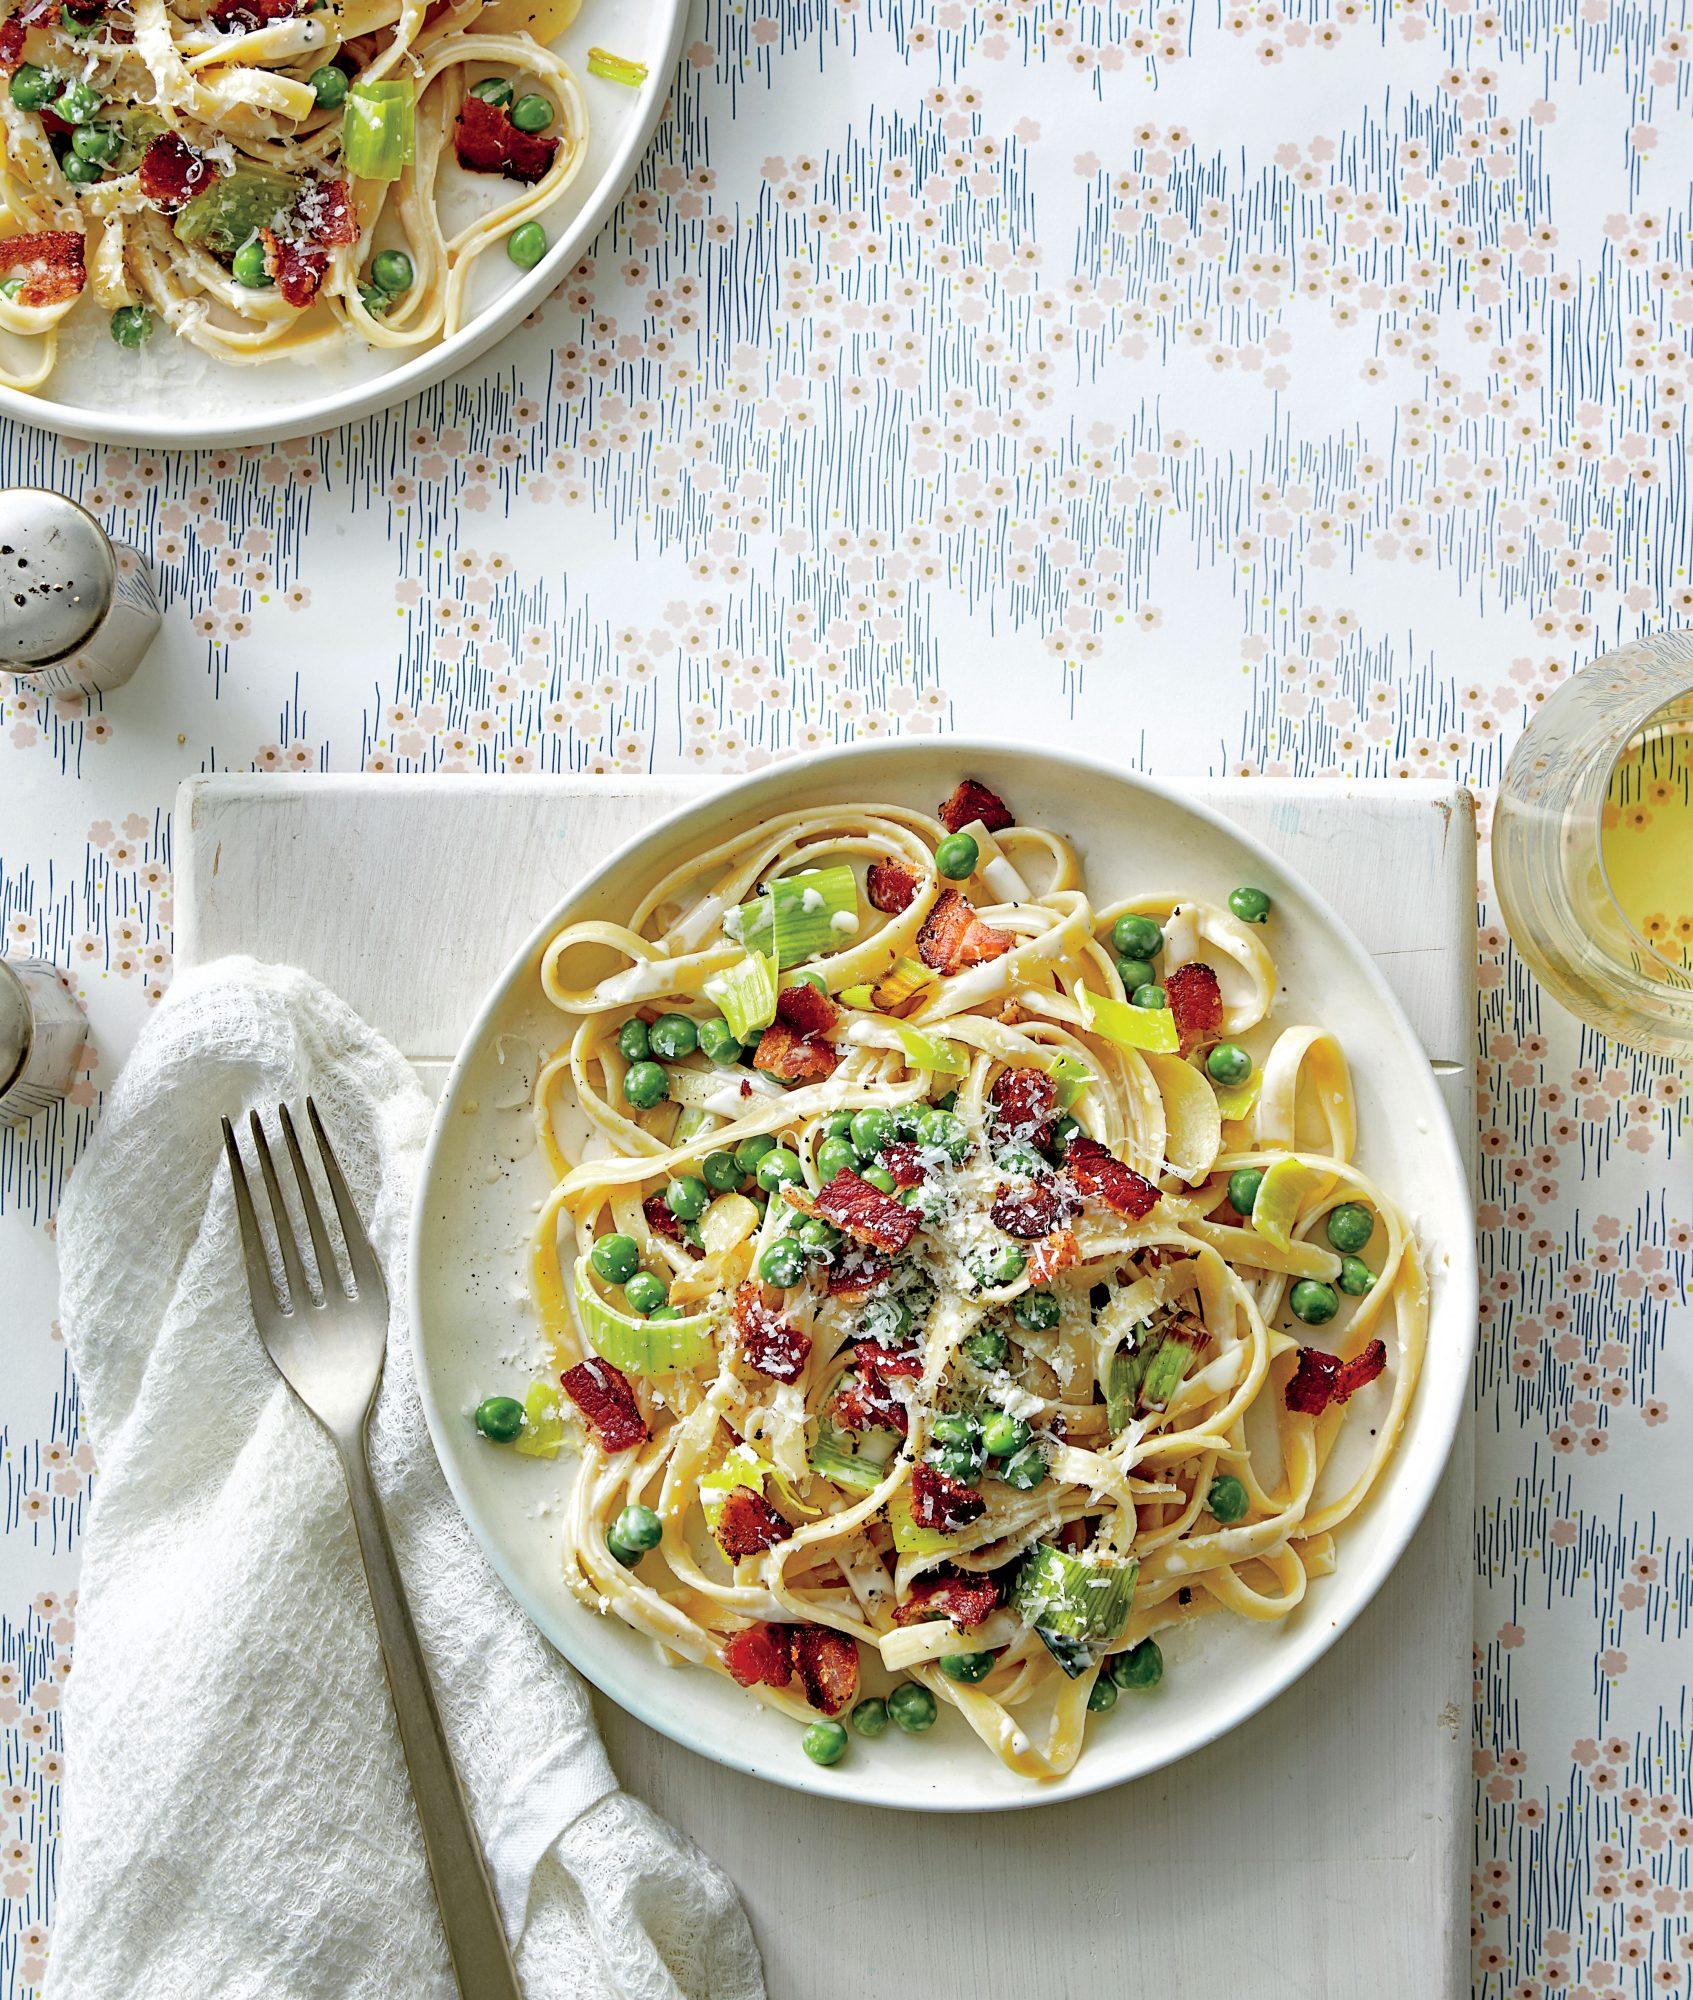 Fettuccine Alfredo with Leeks, Peas, and Bacon